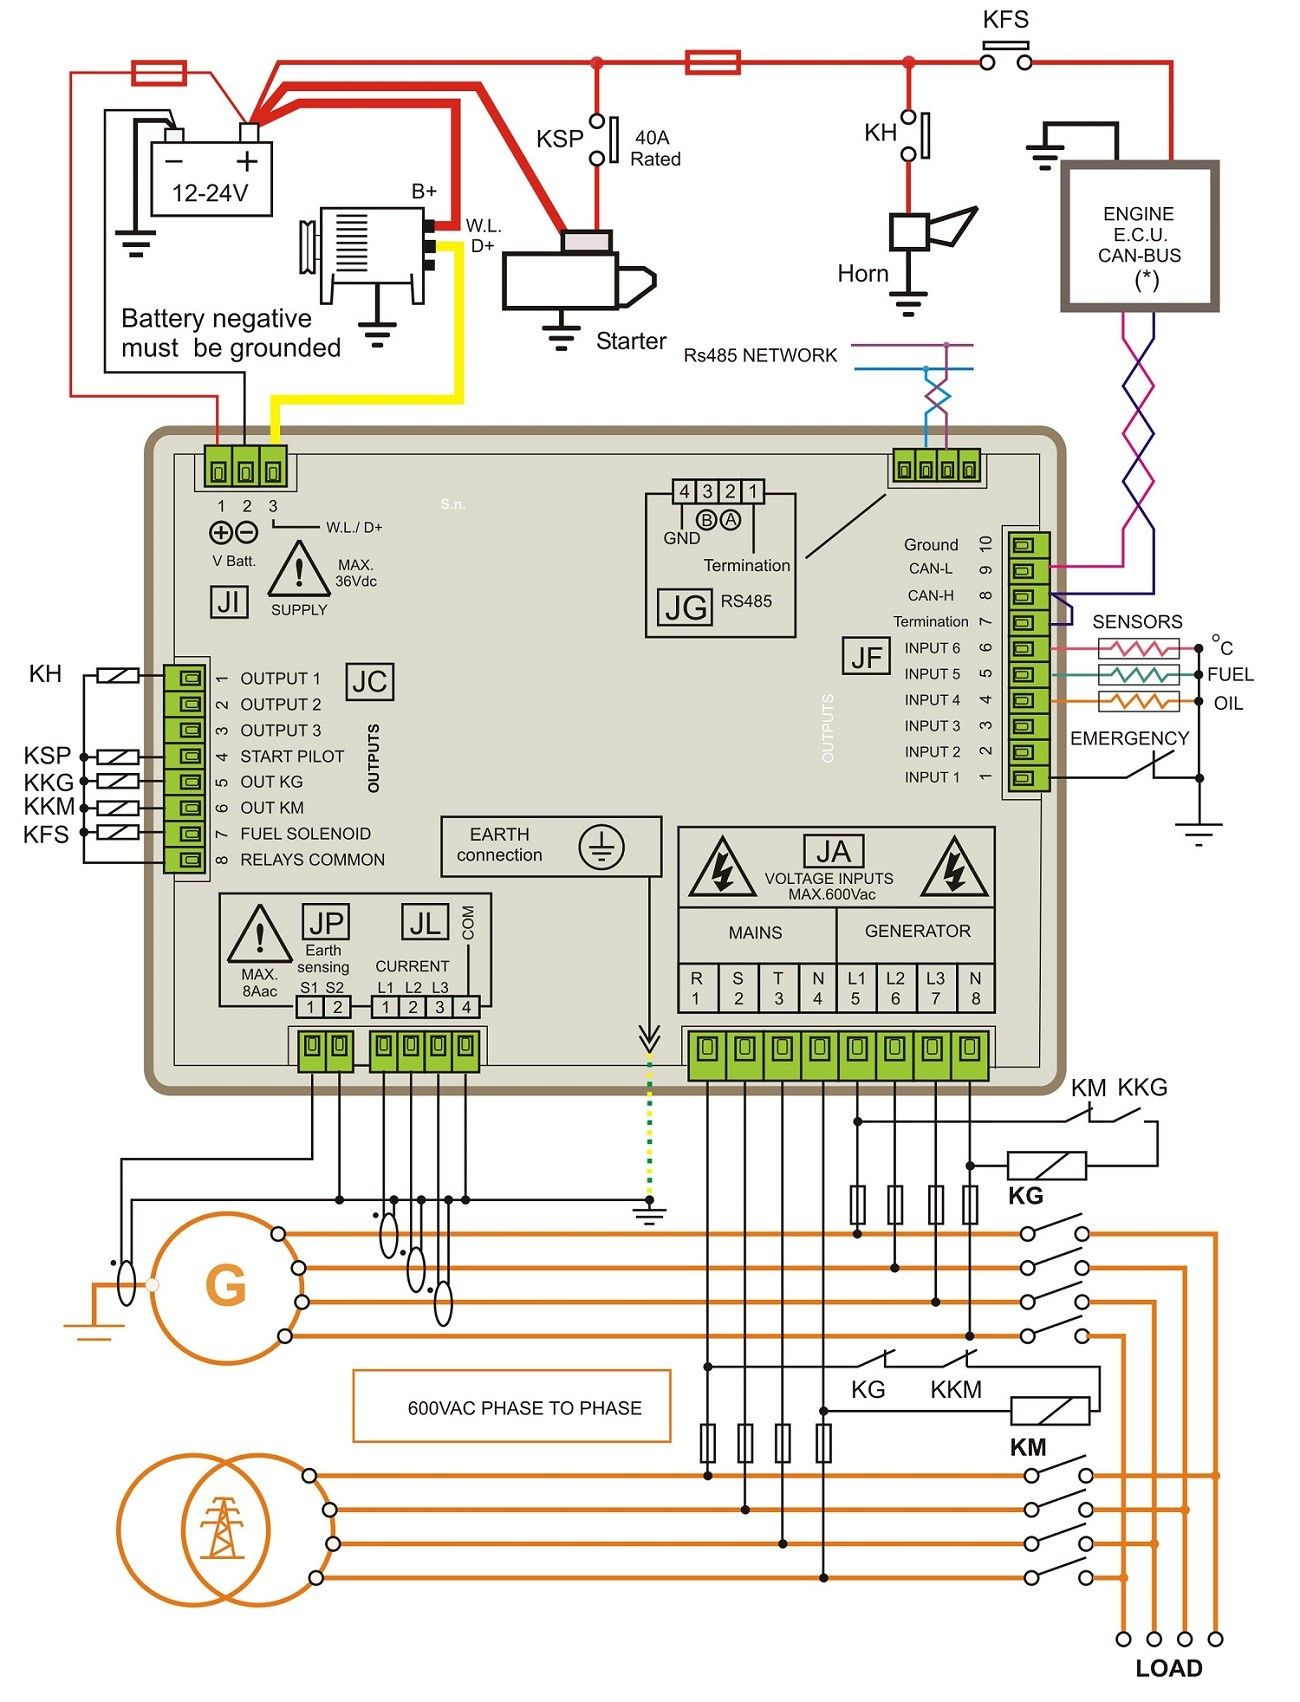 unique wiring diagram for olympian generator #diagram #diagramsample  #diagramtem… | generator transfer switch, electrical wiring diagram,  electrical circuit diagram  pinterest